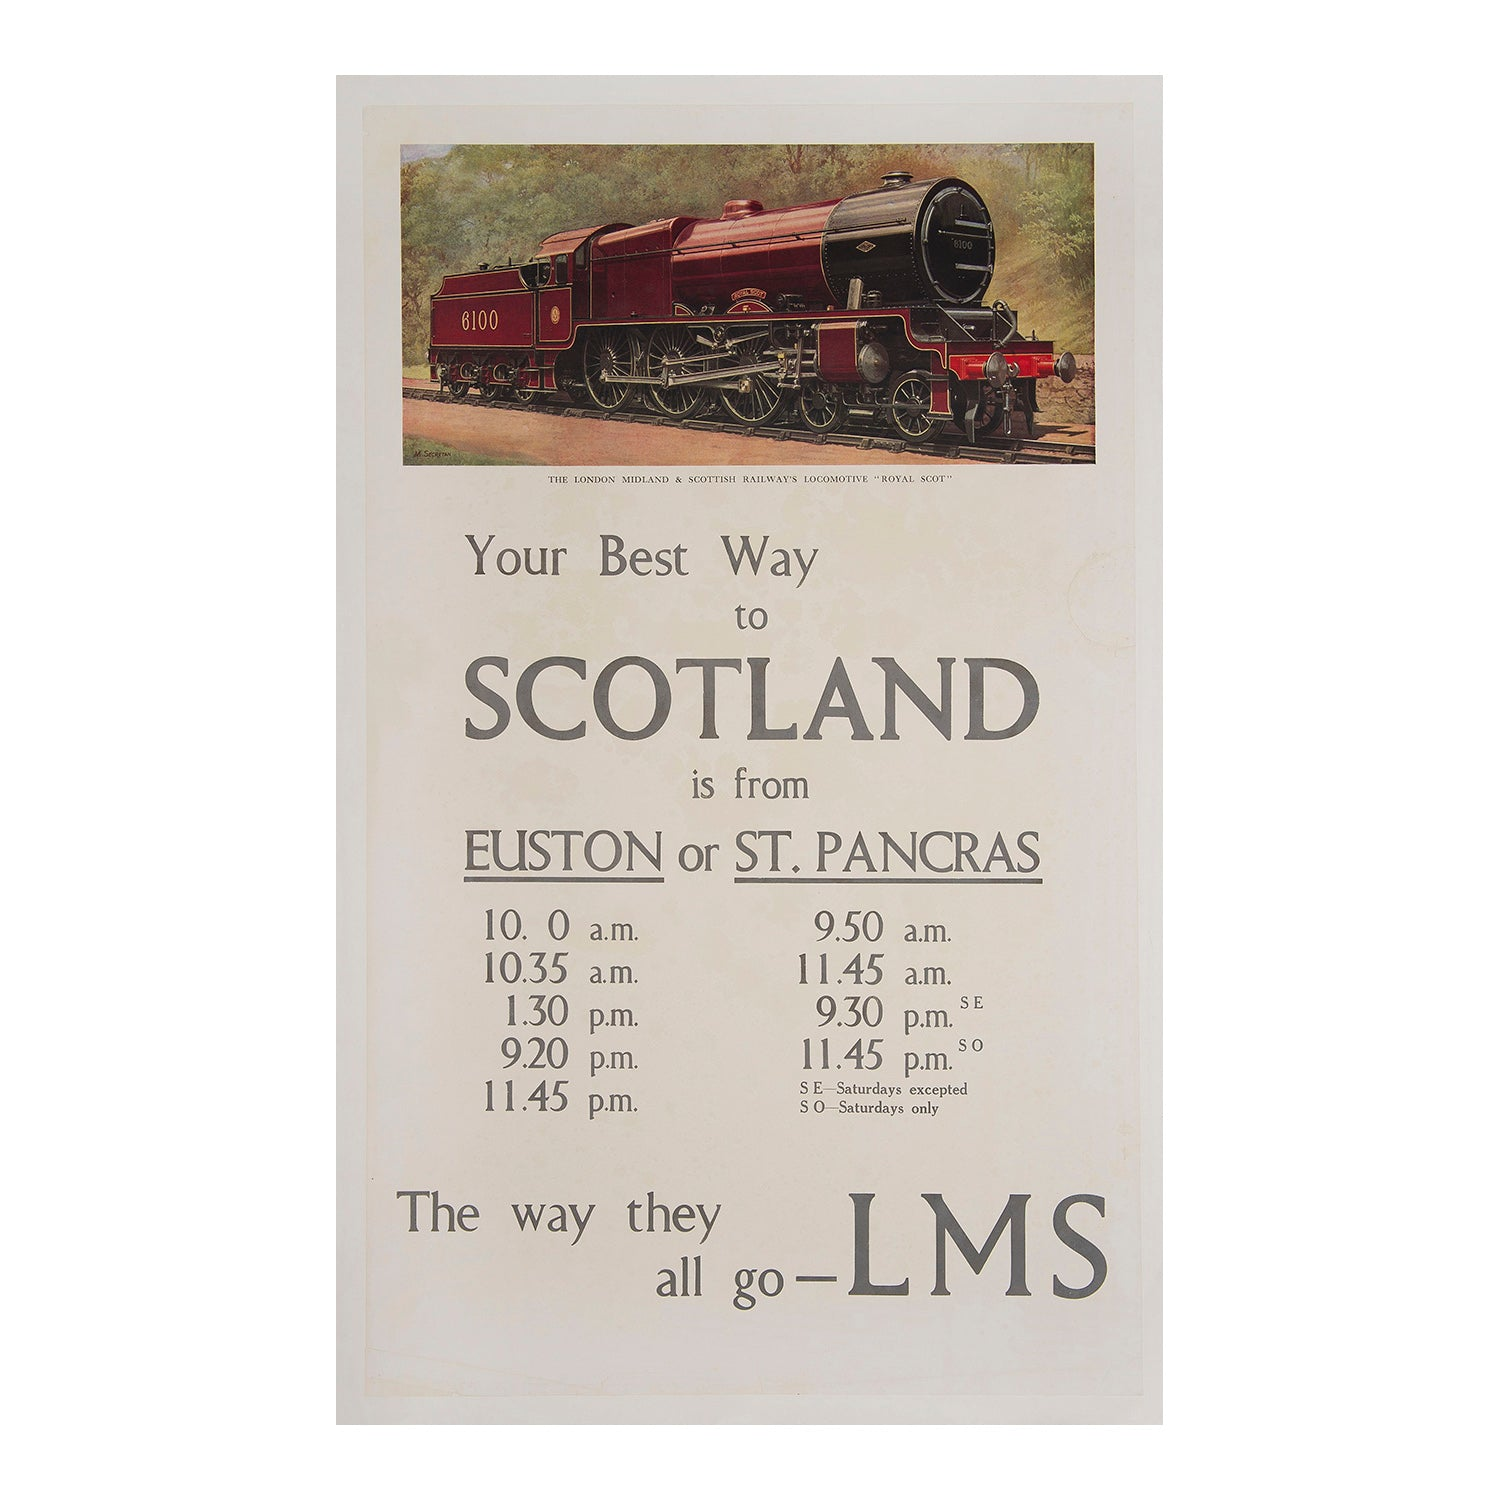 Your best way to Scotland is from Euston or St Pancras